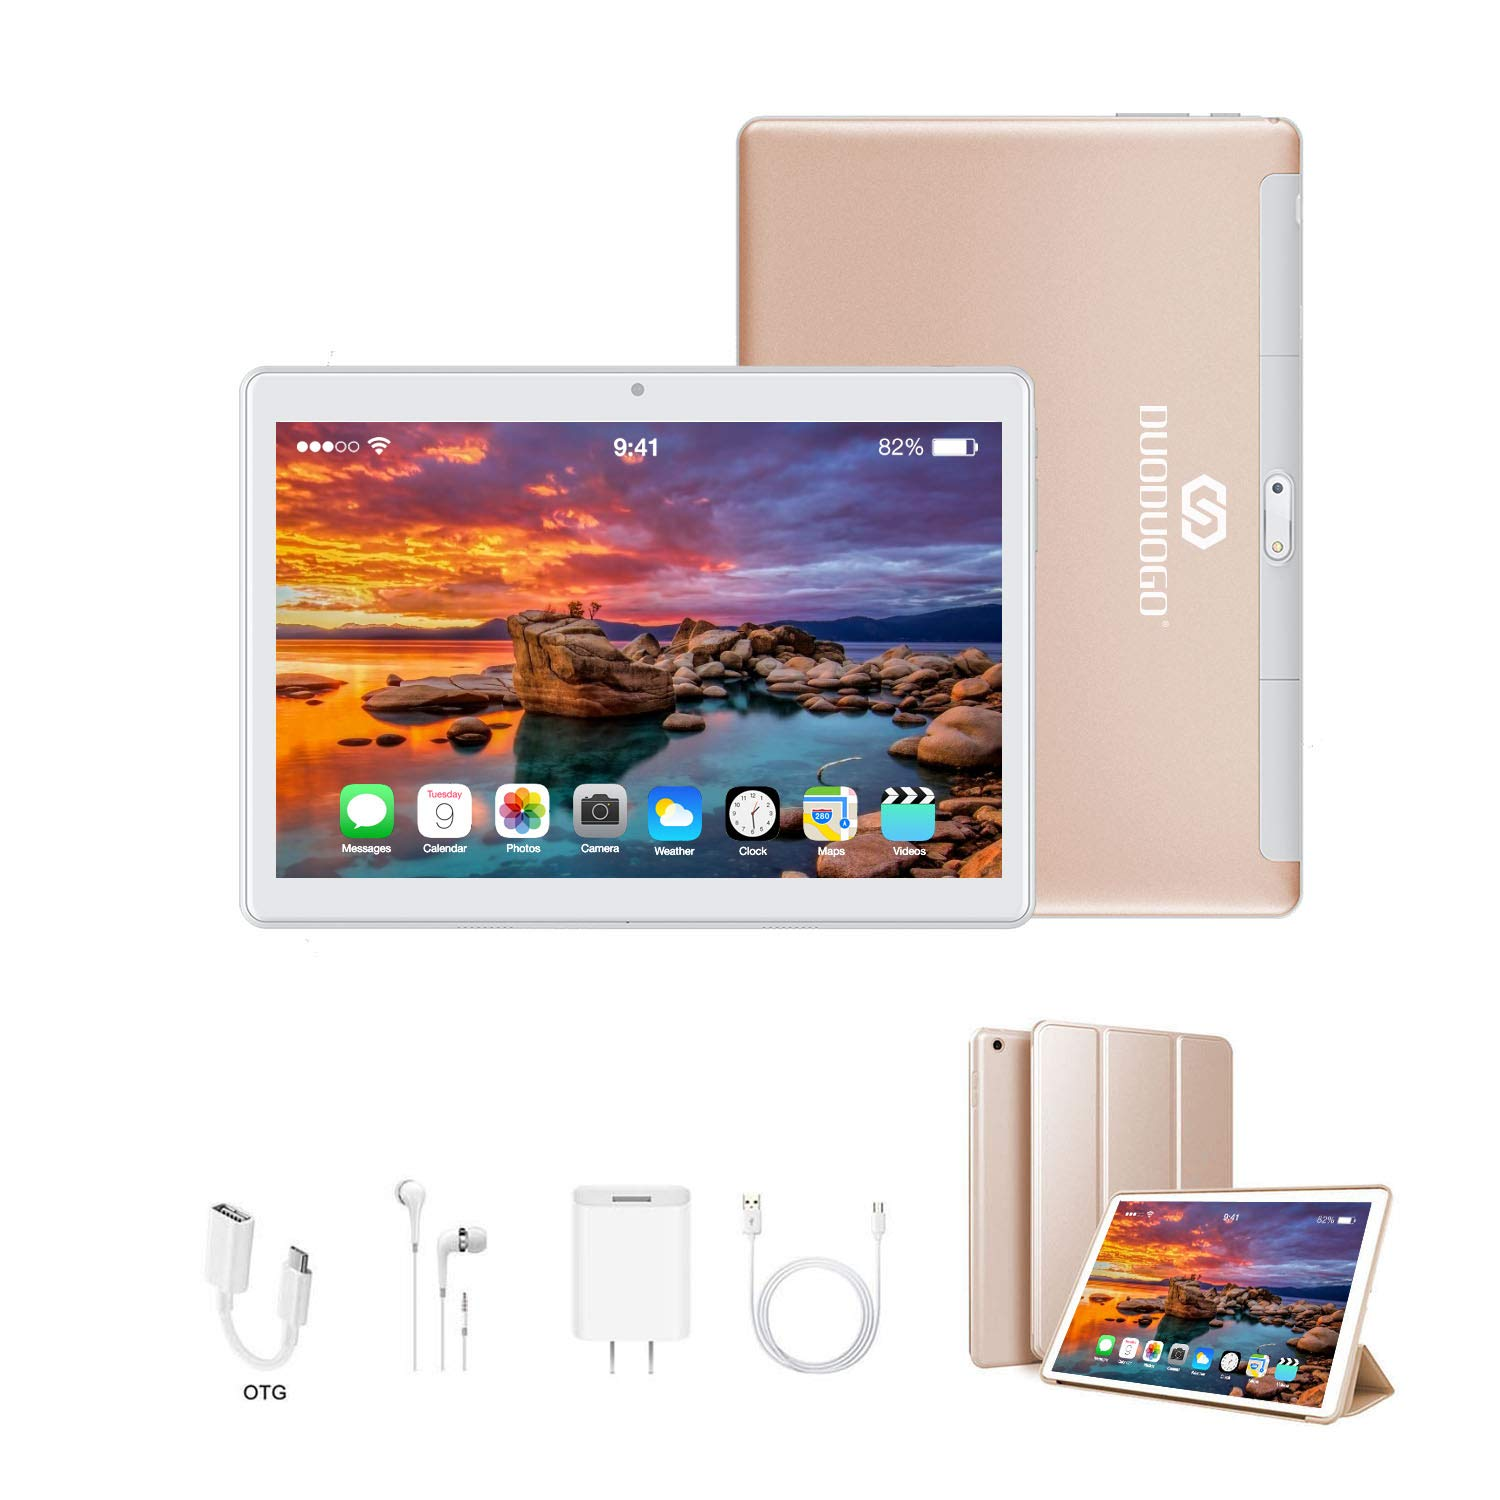 Tablets 10 Inch, Dual 4G SIM/WiFi, 3GB RAM+32GB ROM/128GB, Android 9.0, 8500 mAh Computer Tablet, Quad-Core Processor, 13MP Dual Camera Tablet PC, OTG, Bluetooth, HD IPS Screen, Google Play (Gold)